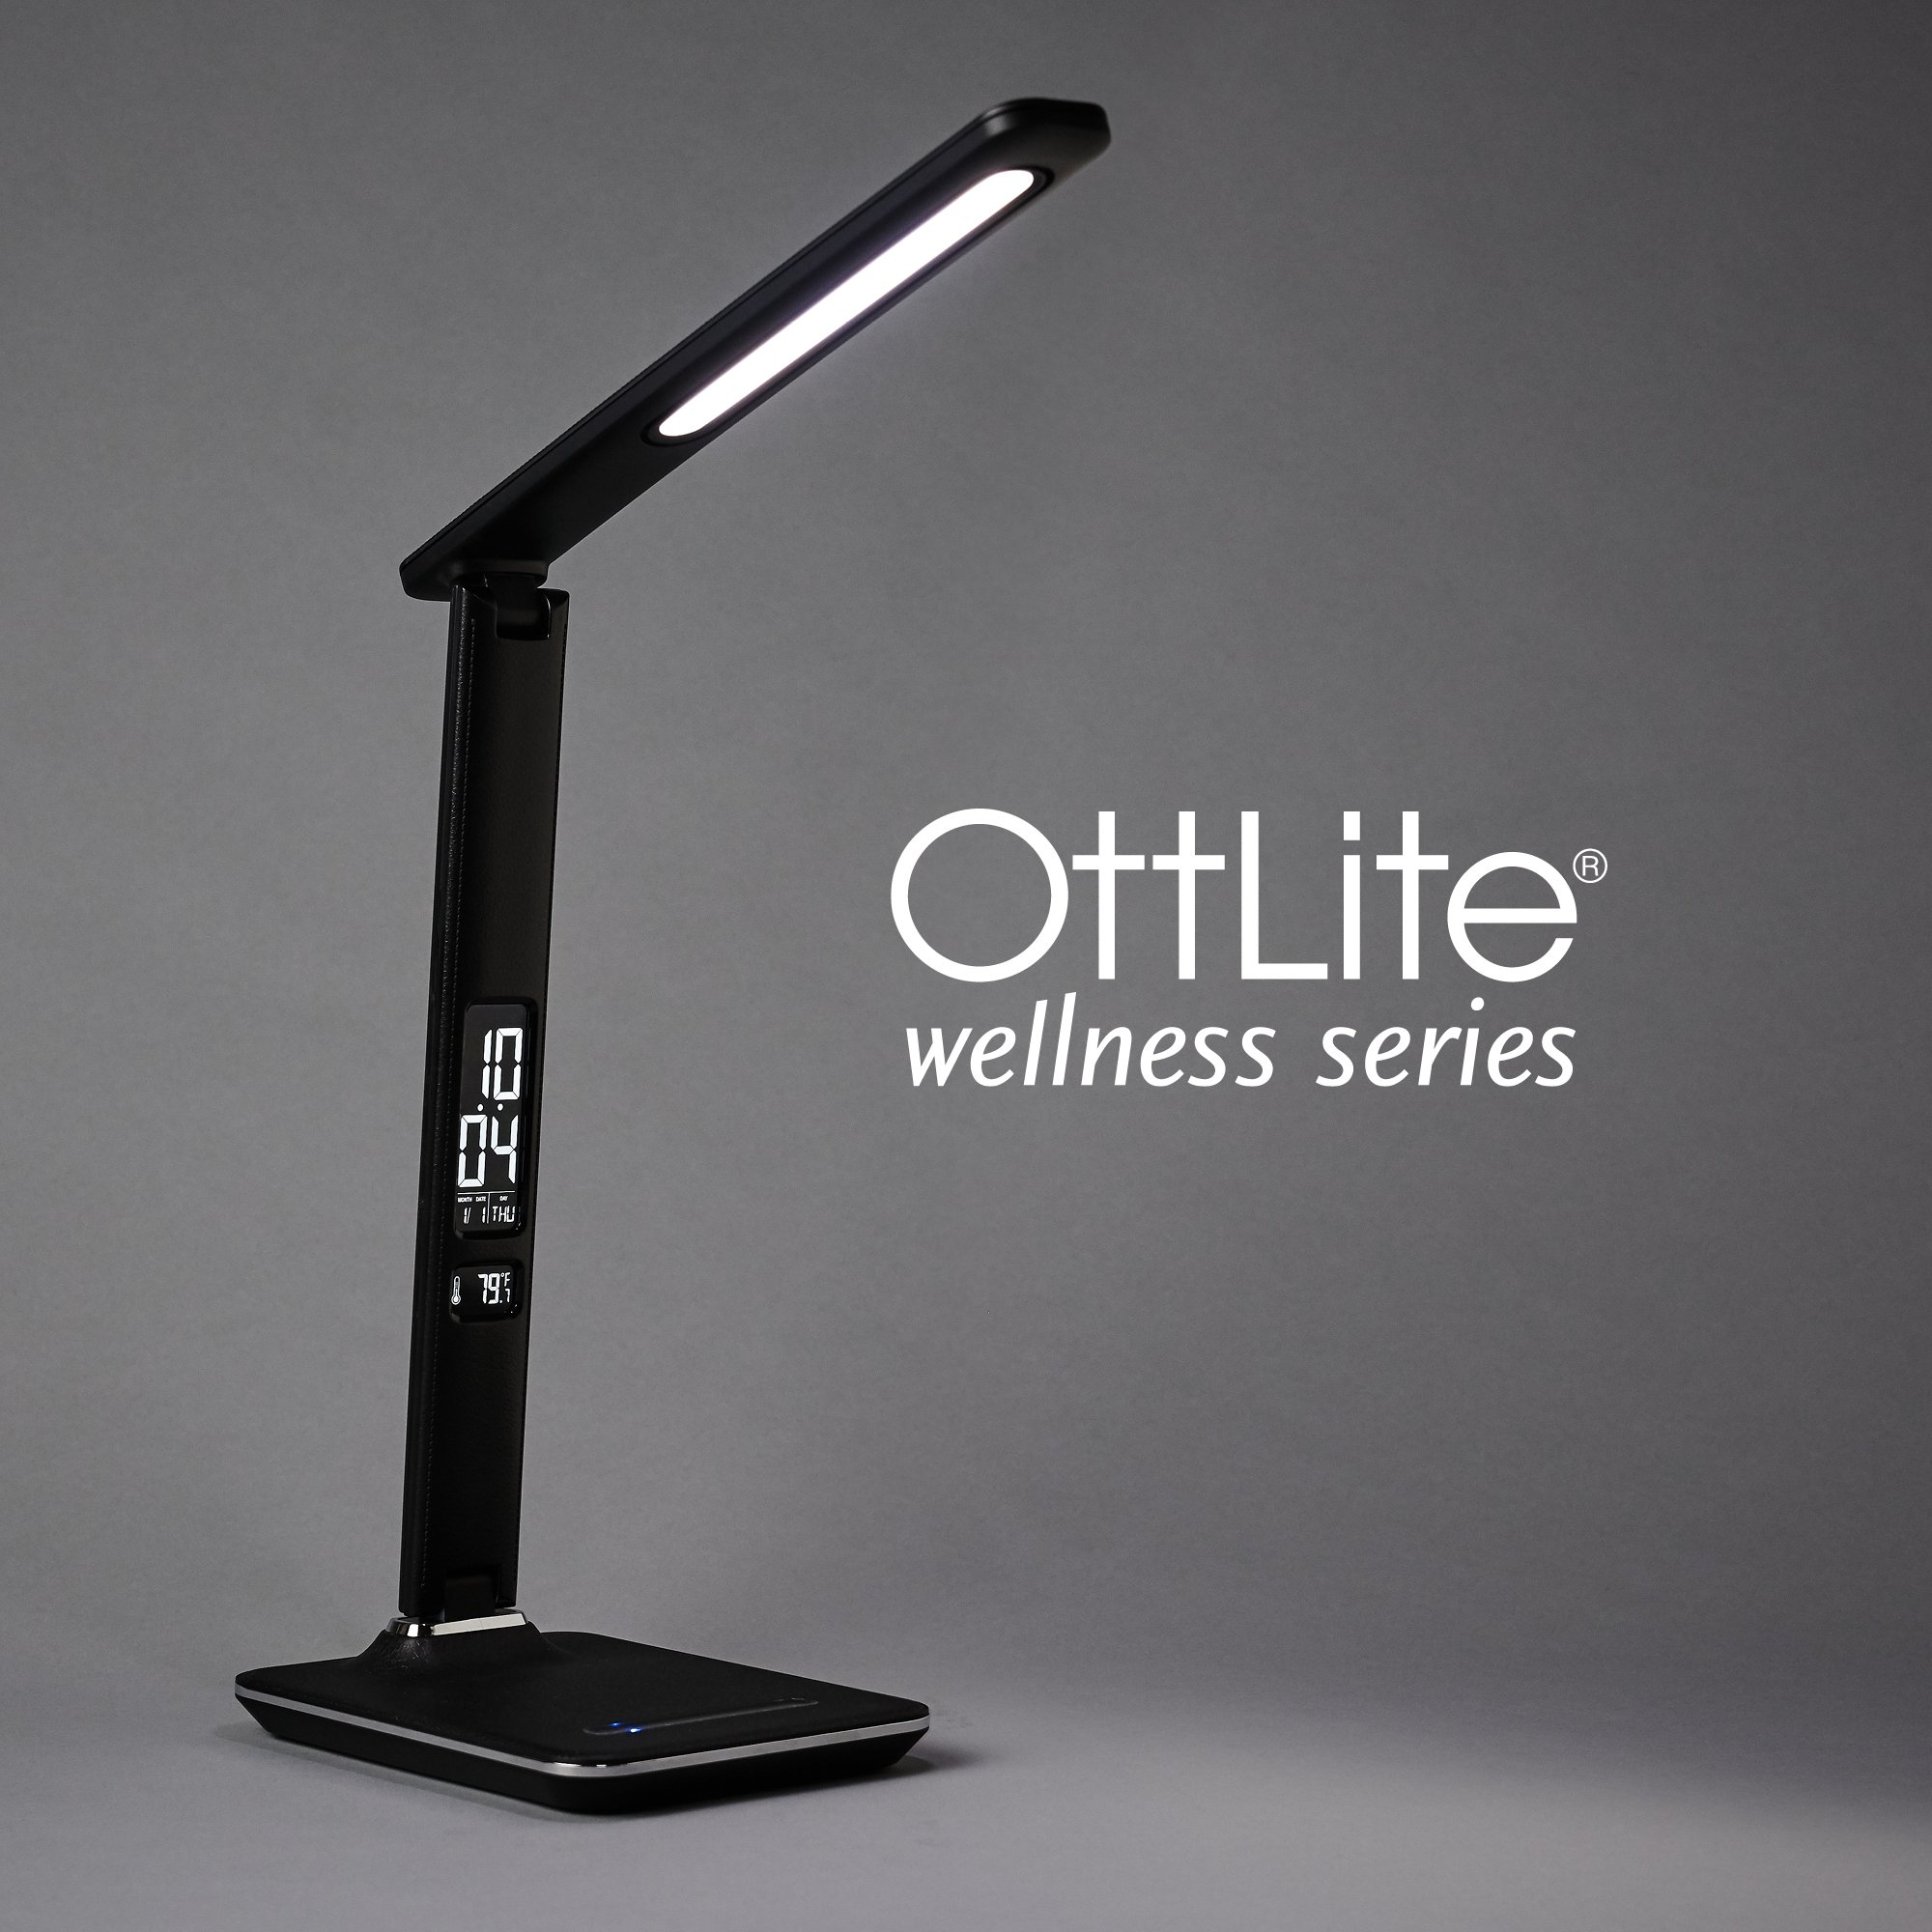 OttLite Renew LED Desk Lamp with Touch Dimmer and USB Charging Port | 6 Brightness Mode, Adjustable, Reduces Eyestrain | LCD Screen Displays Date, Time and Temperature | Great for Office, Home (Black)